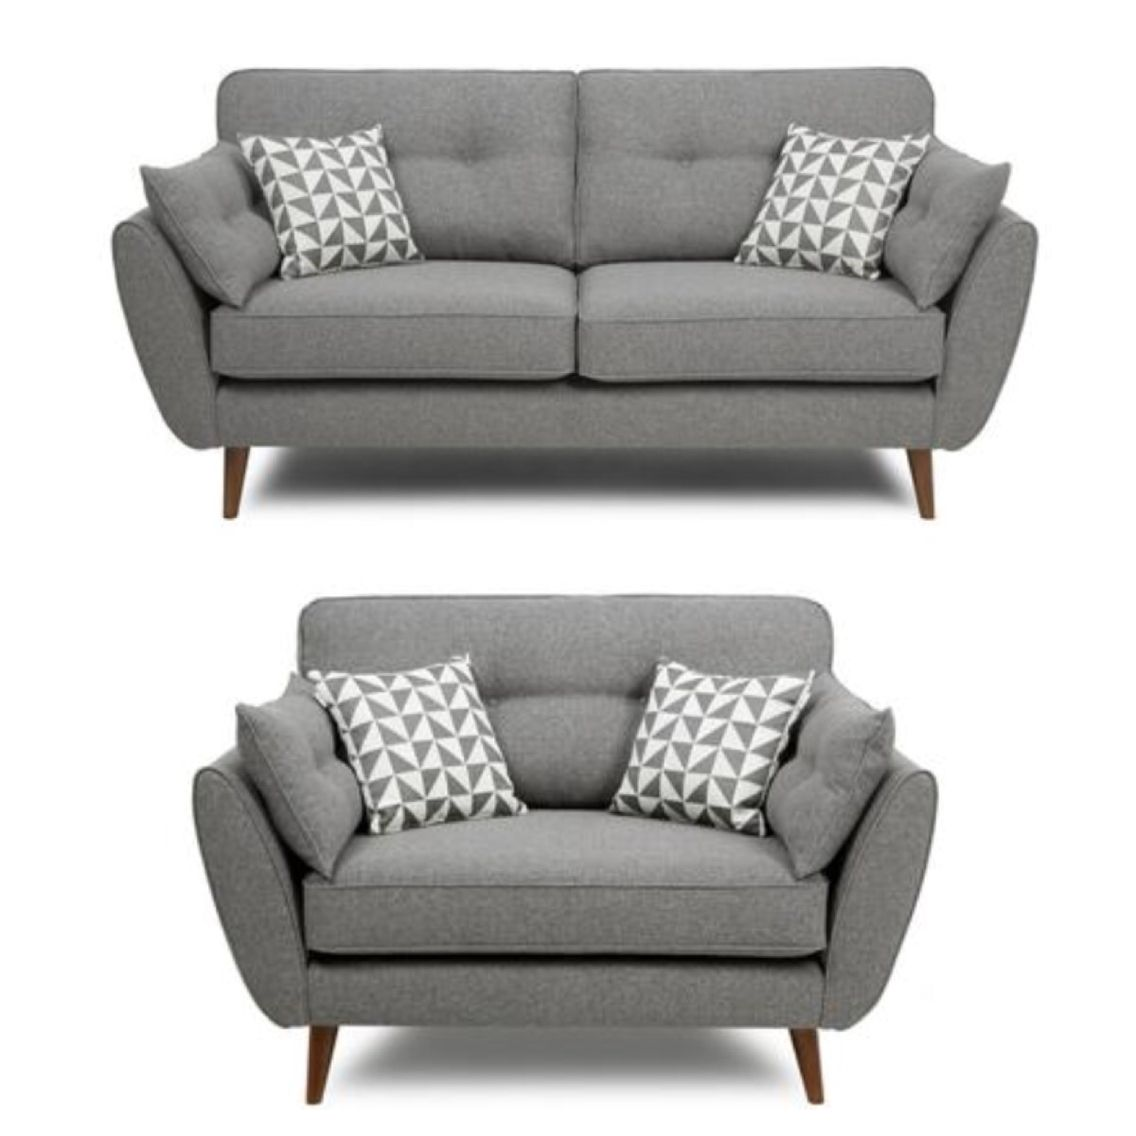 French connection grey sofa and cuddle chair pinteres for Sofaland couch